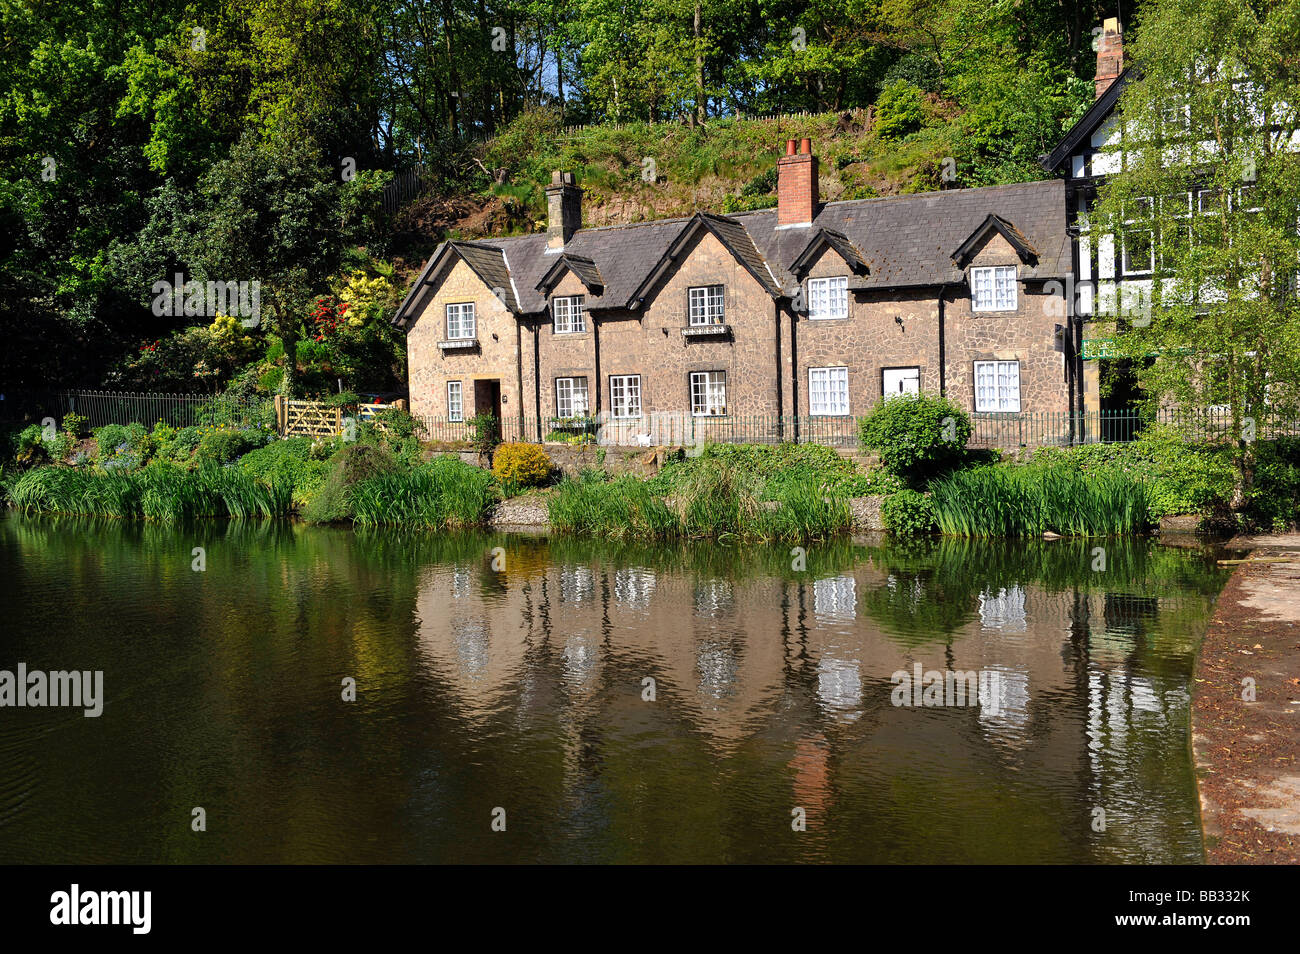 View of the pond and cottages in Eagle Brow, Lymm, Cheshire, England - Stock Image